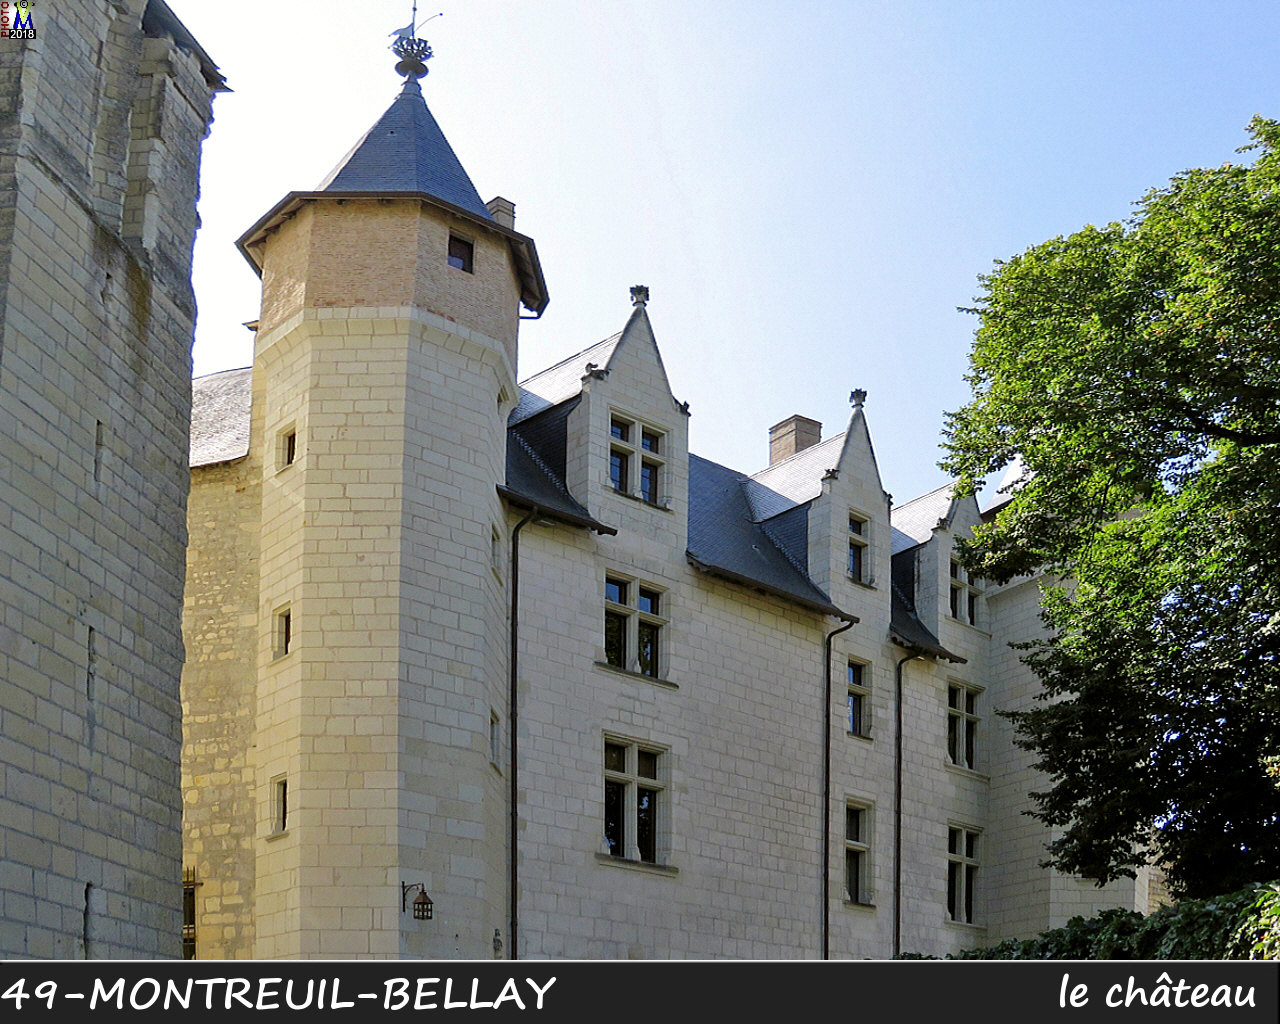 49MONTREUIL-BELLAY_chateau_1034.jpg